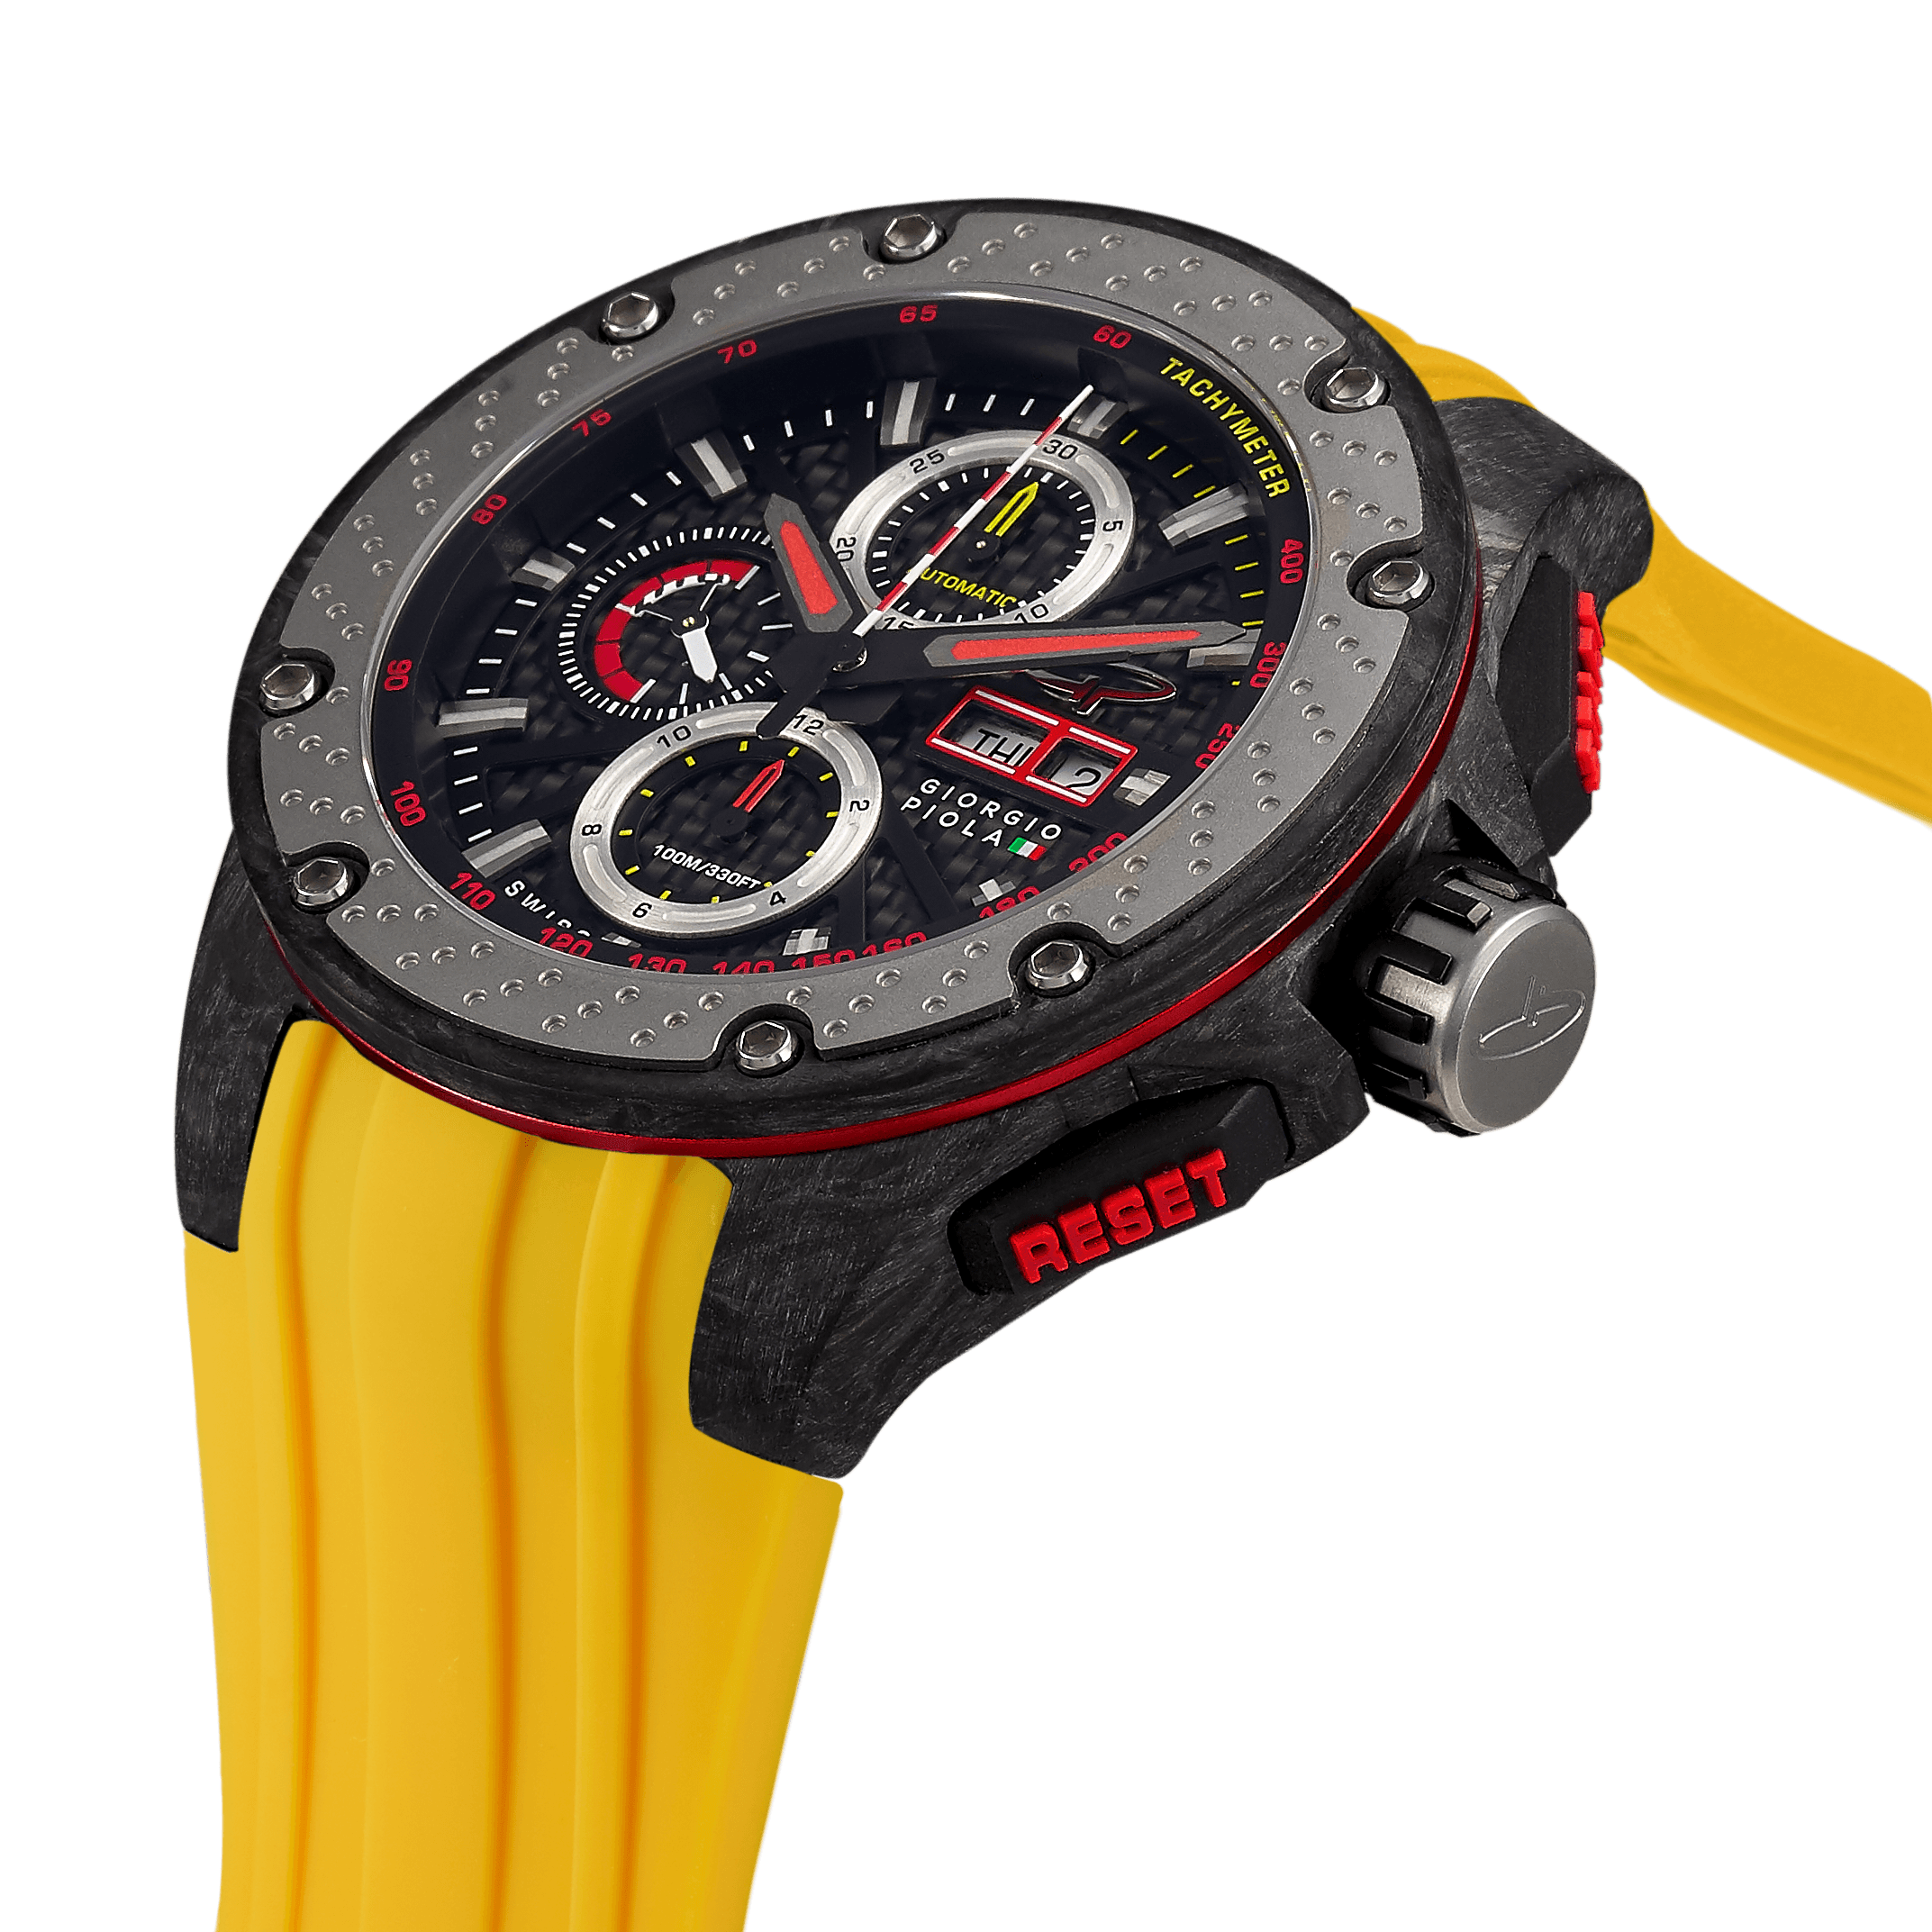 G5 - Black-Yellow Automatic Carbon Fiber Swiss Sport Chrono Watch